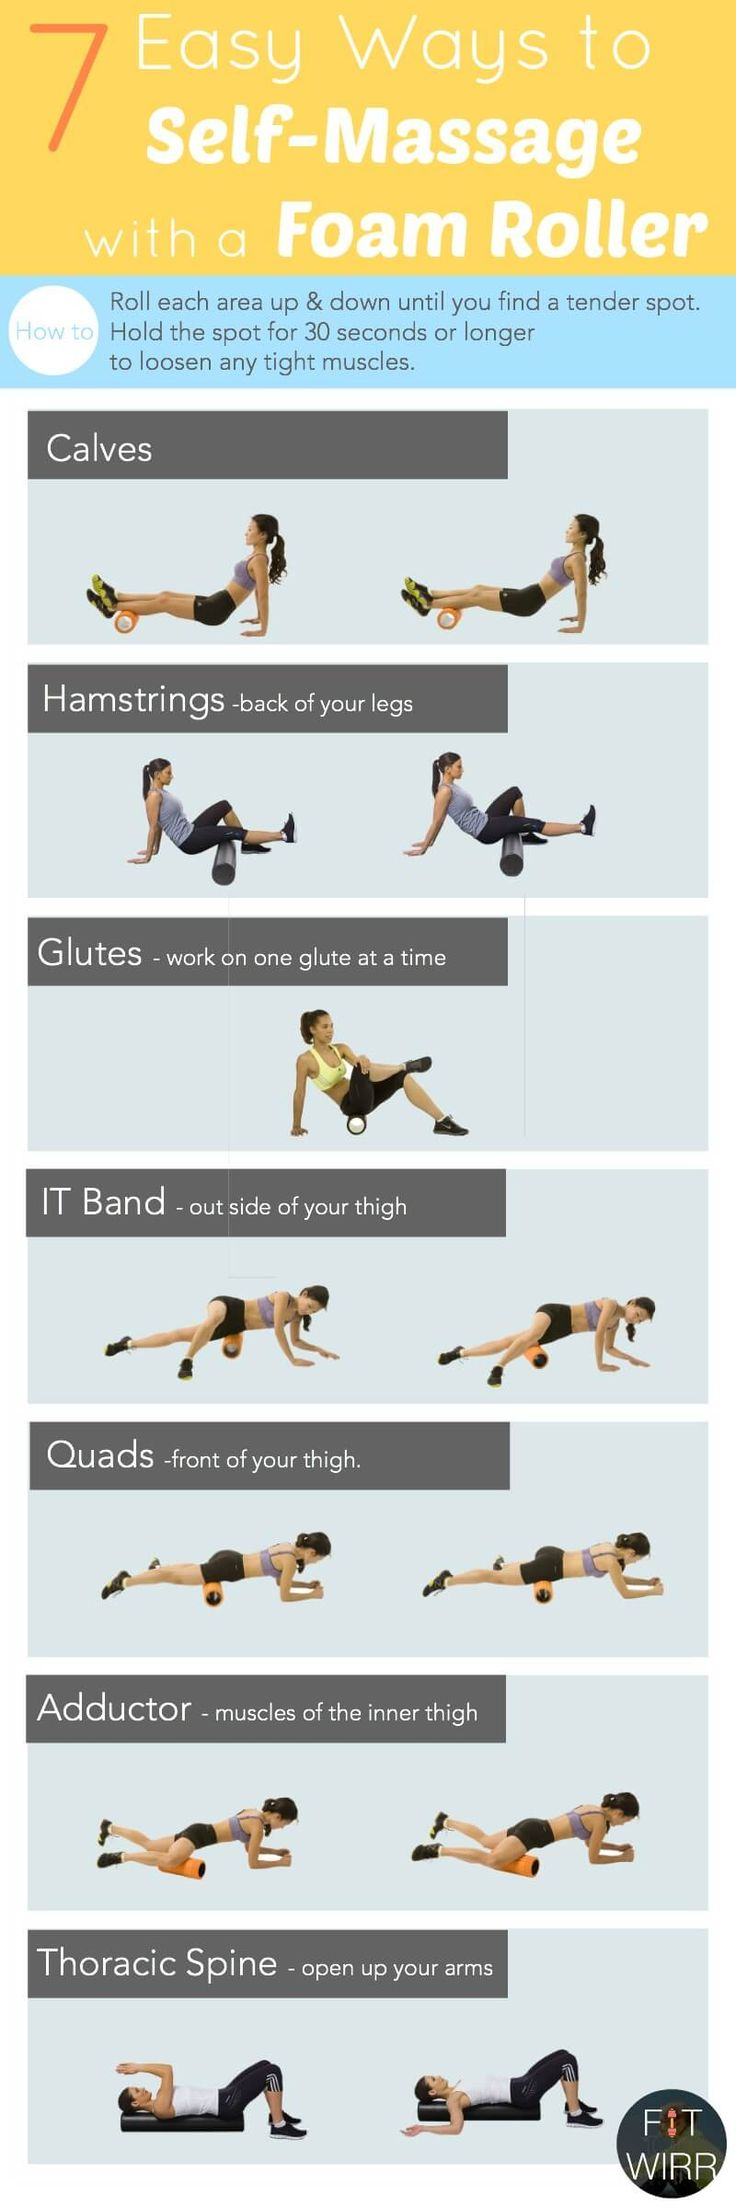 7 Foam Roller Exercises to Reduce Muscle Soreness